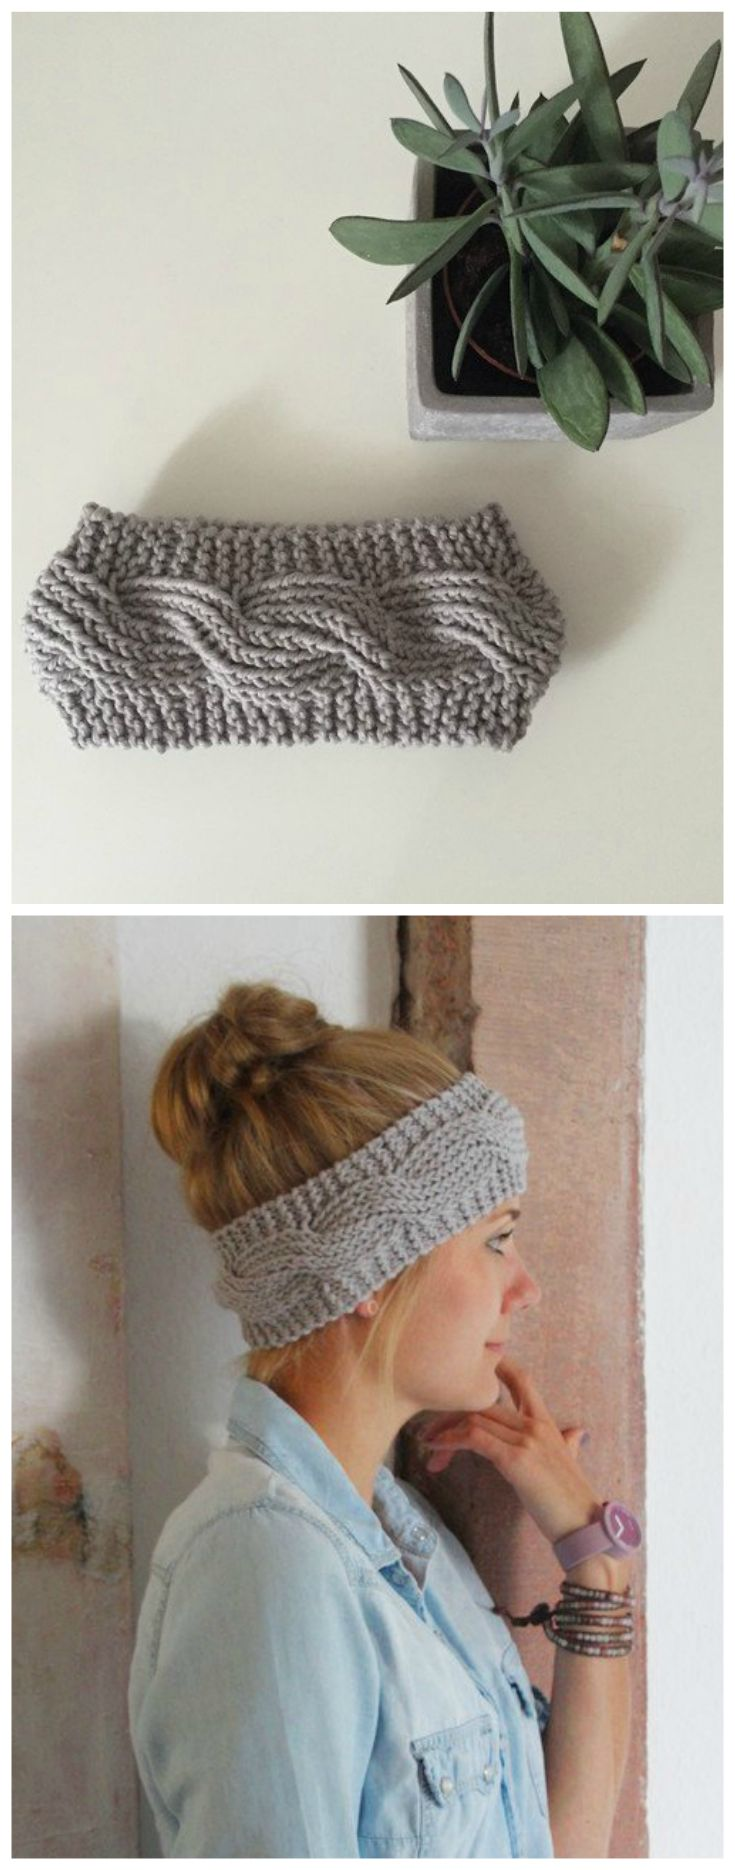 Gestricktes Stirnband aus Merinowolle, Winter Accessoire / winterly accessory: knitted headband in light grey made by die zimtbluete via DaWanda.com                                                                                                                                                                                 Mehr